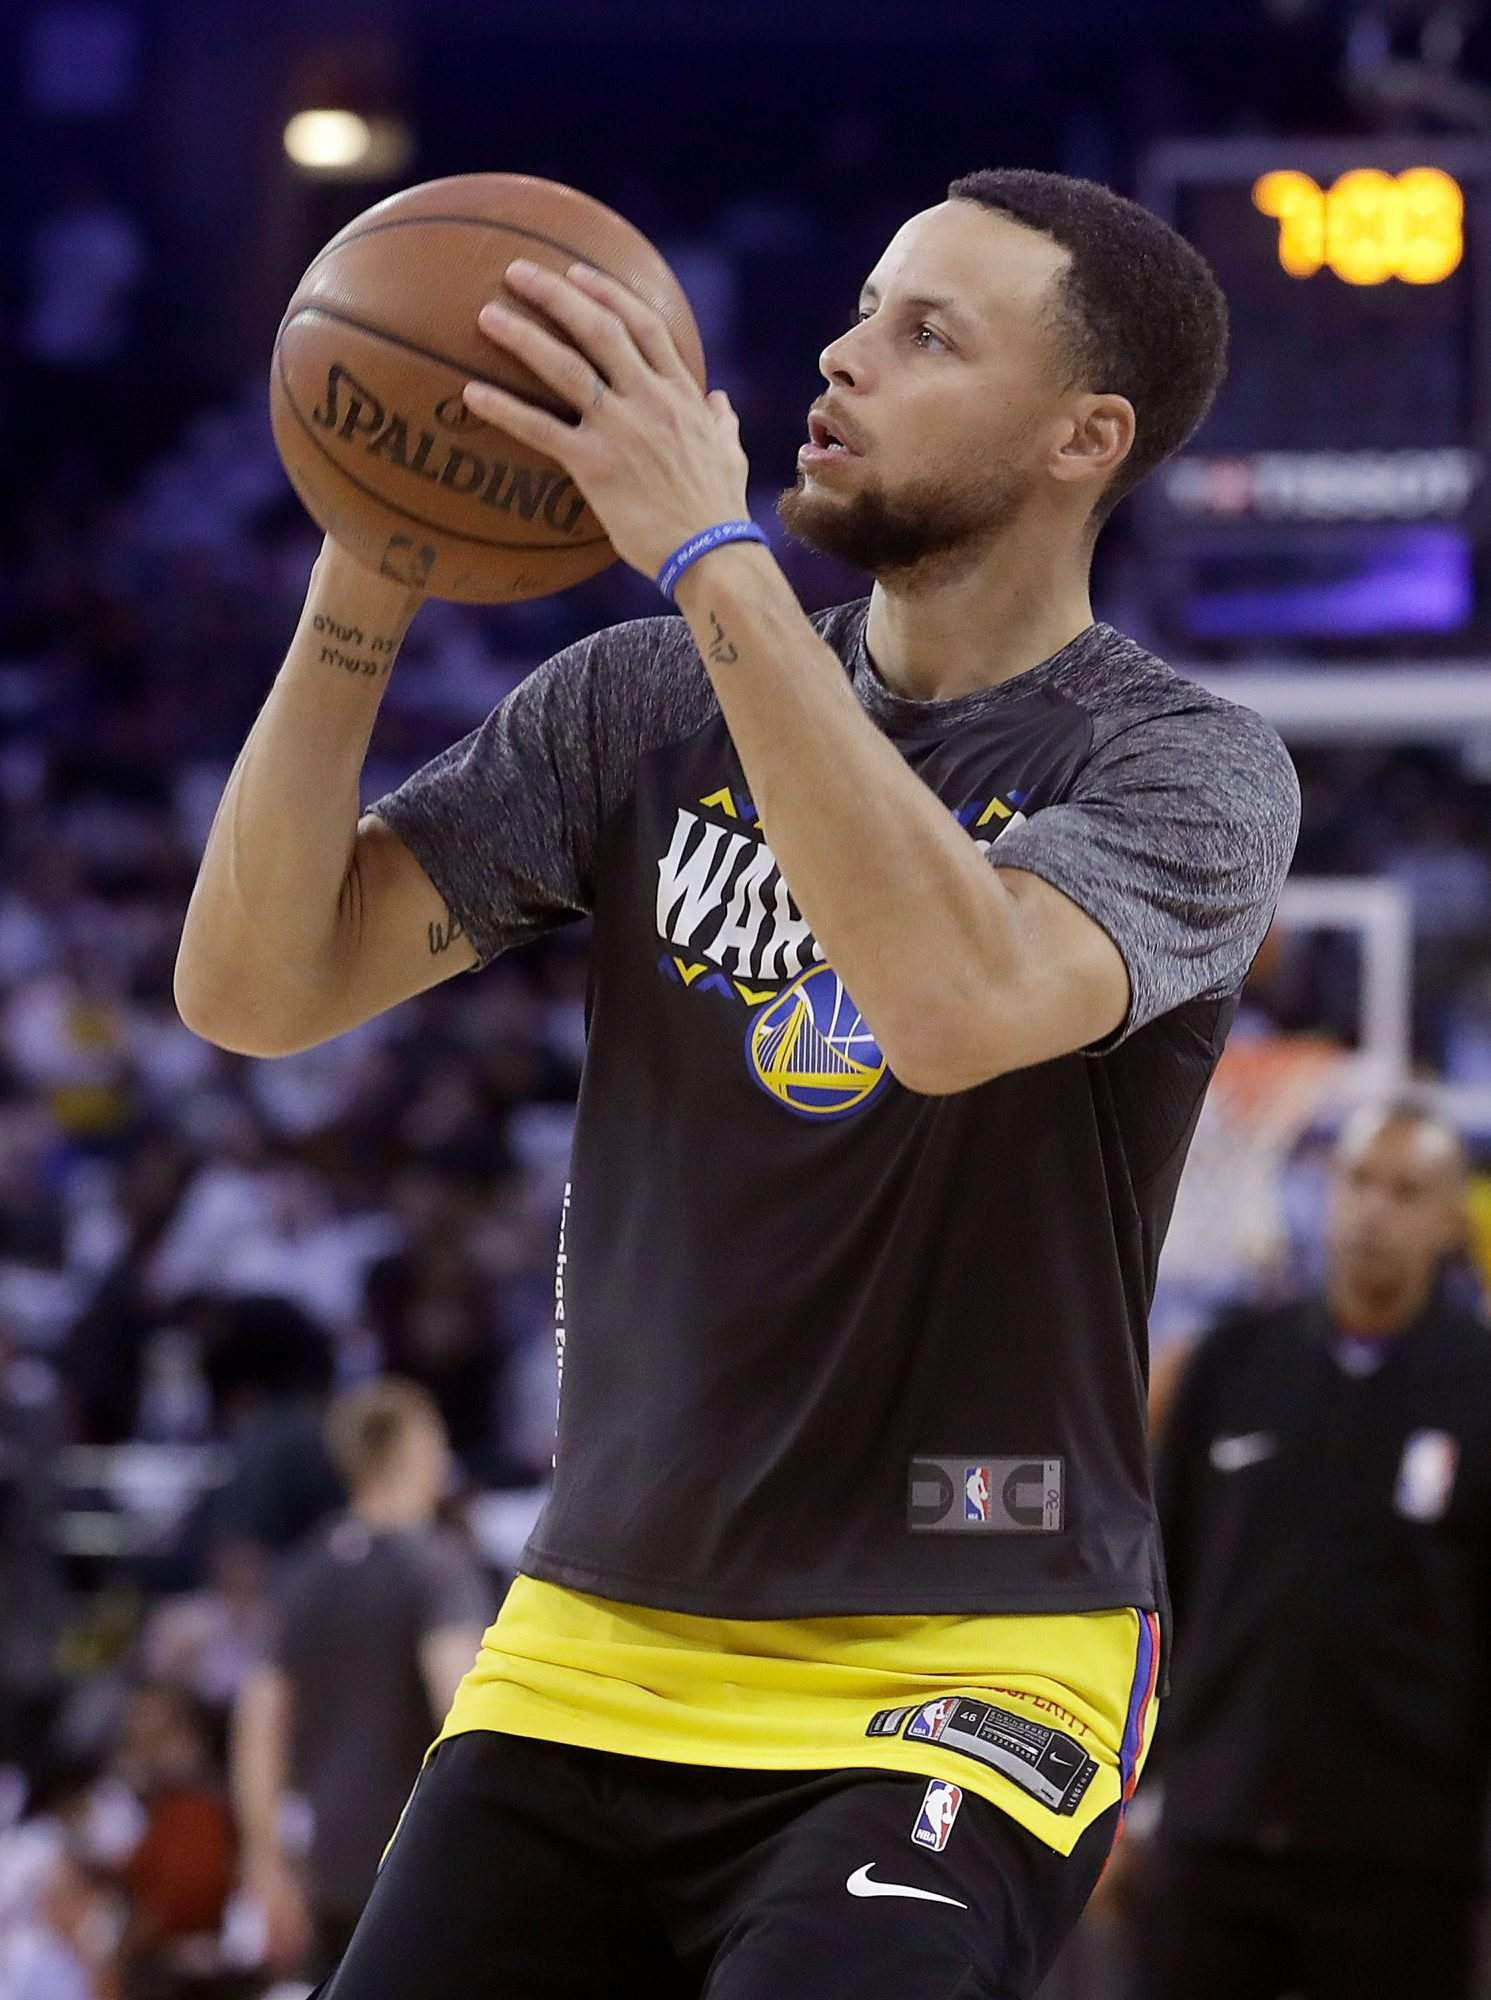 Durango student battling cancer will meet nba hero stephen curry golden state warriors guard stephen curry warms up before a game against the spurs earlier this month m4hsunfo